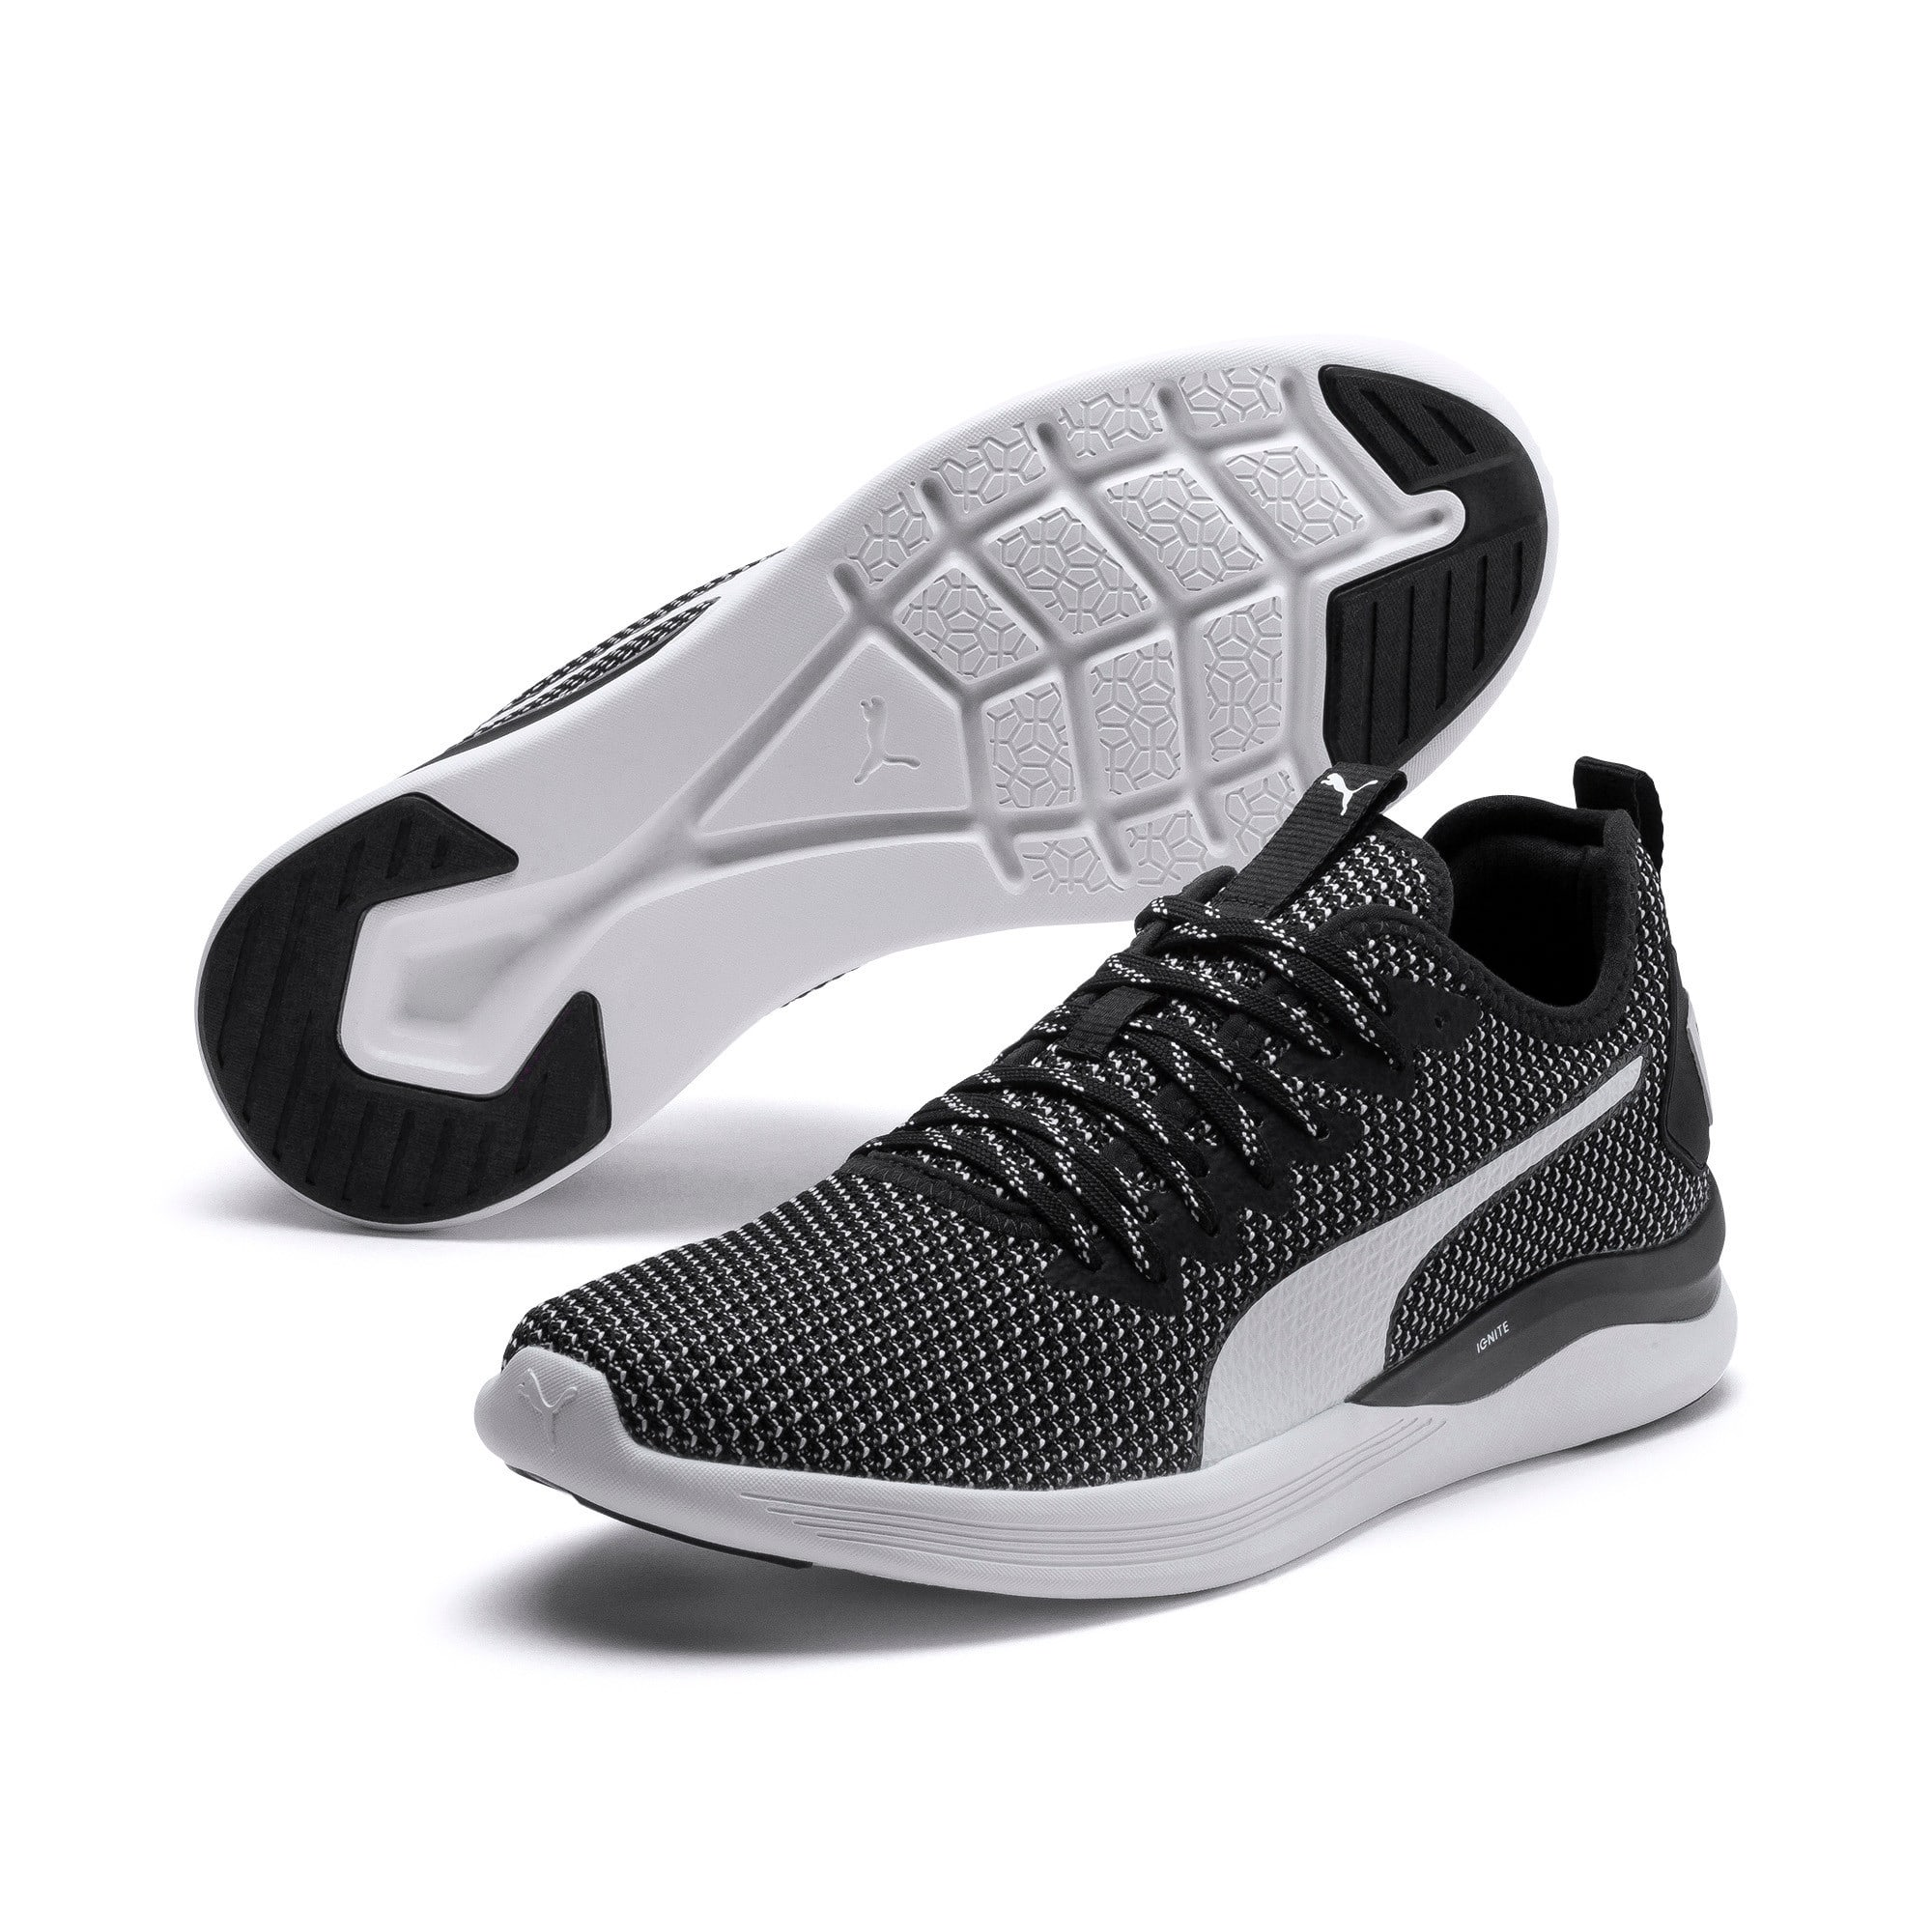 Thumbnail 2 of Chaussure de course IGNITE Flash FS pour homme, Puma Black-Puma White, medium